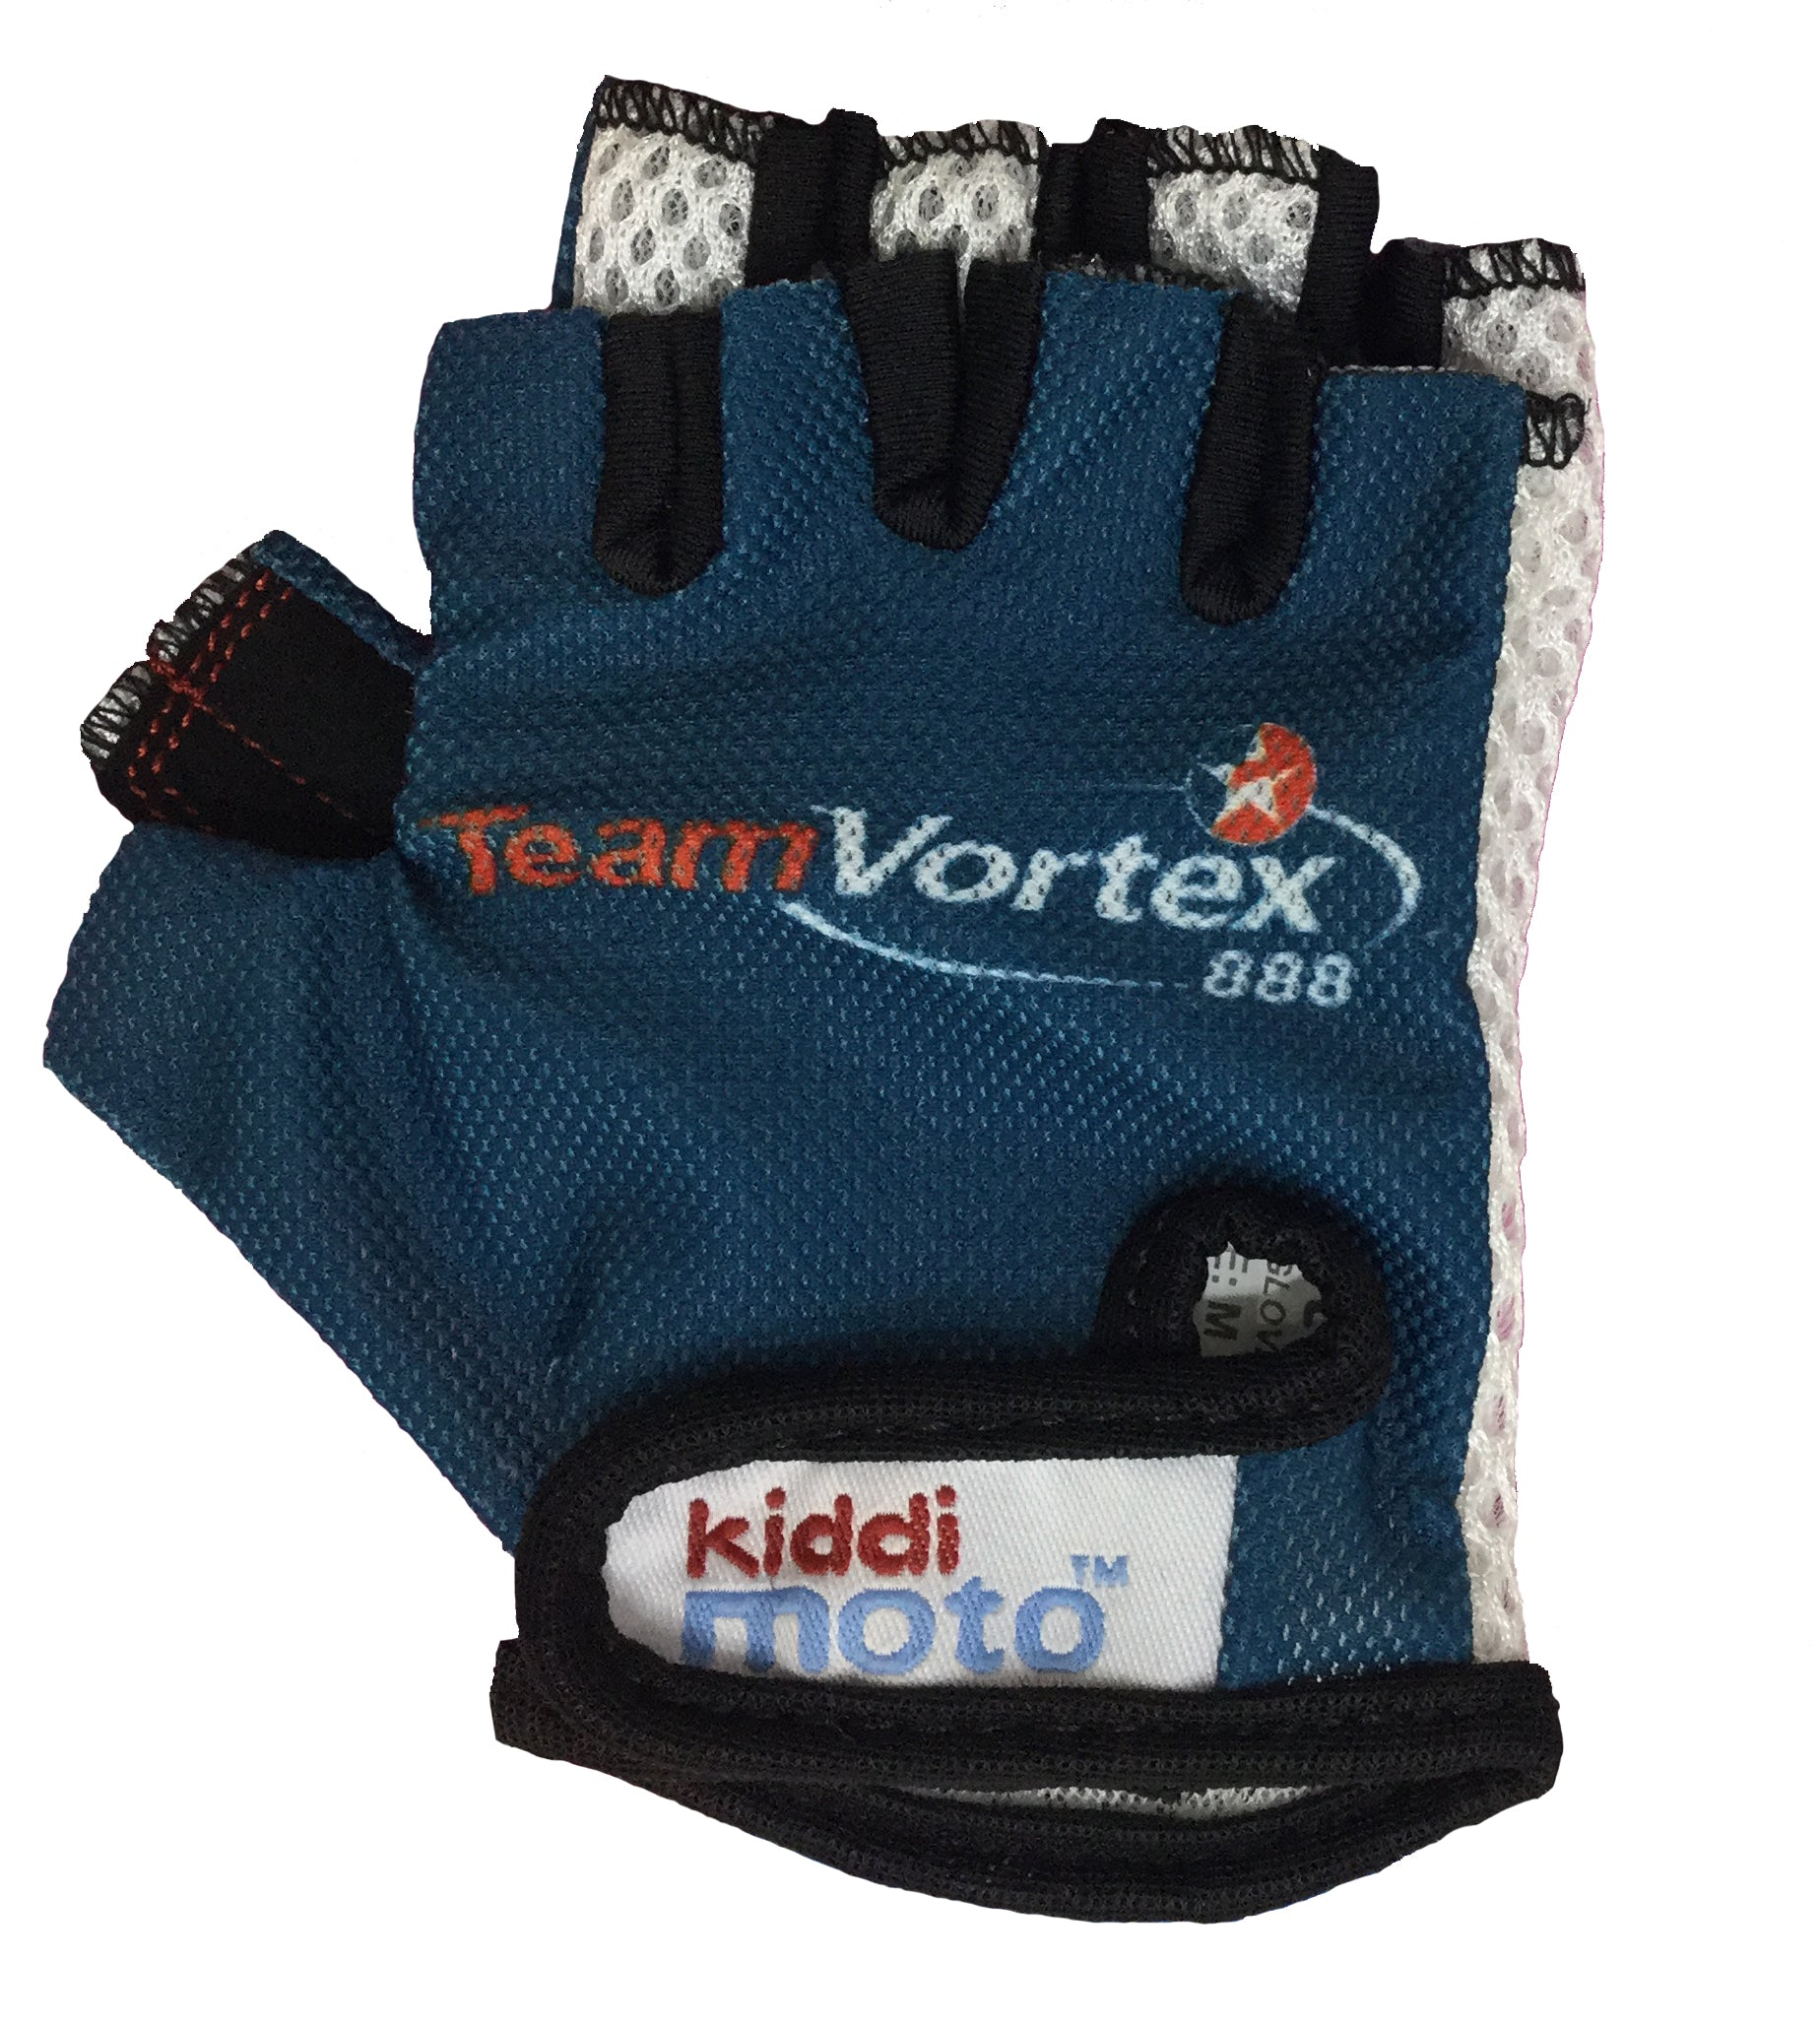 Our Team Vortex gloves are lightweight and fingerless, with a deep teal base and the Team Vortex 888 logo printed over the backs of the palms